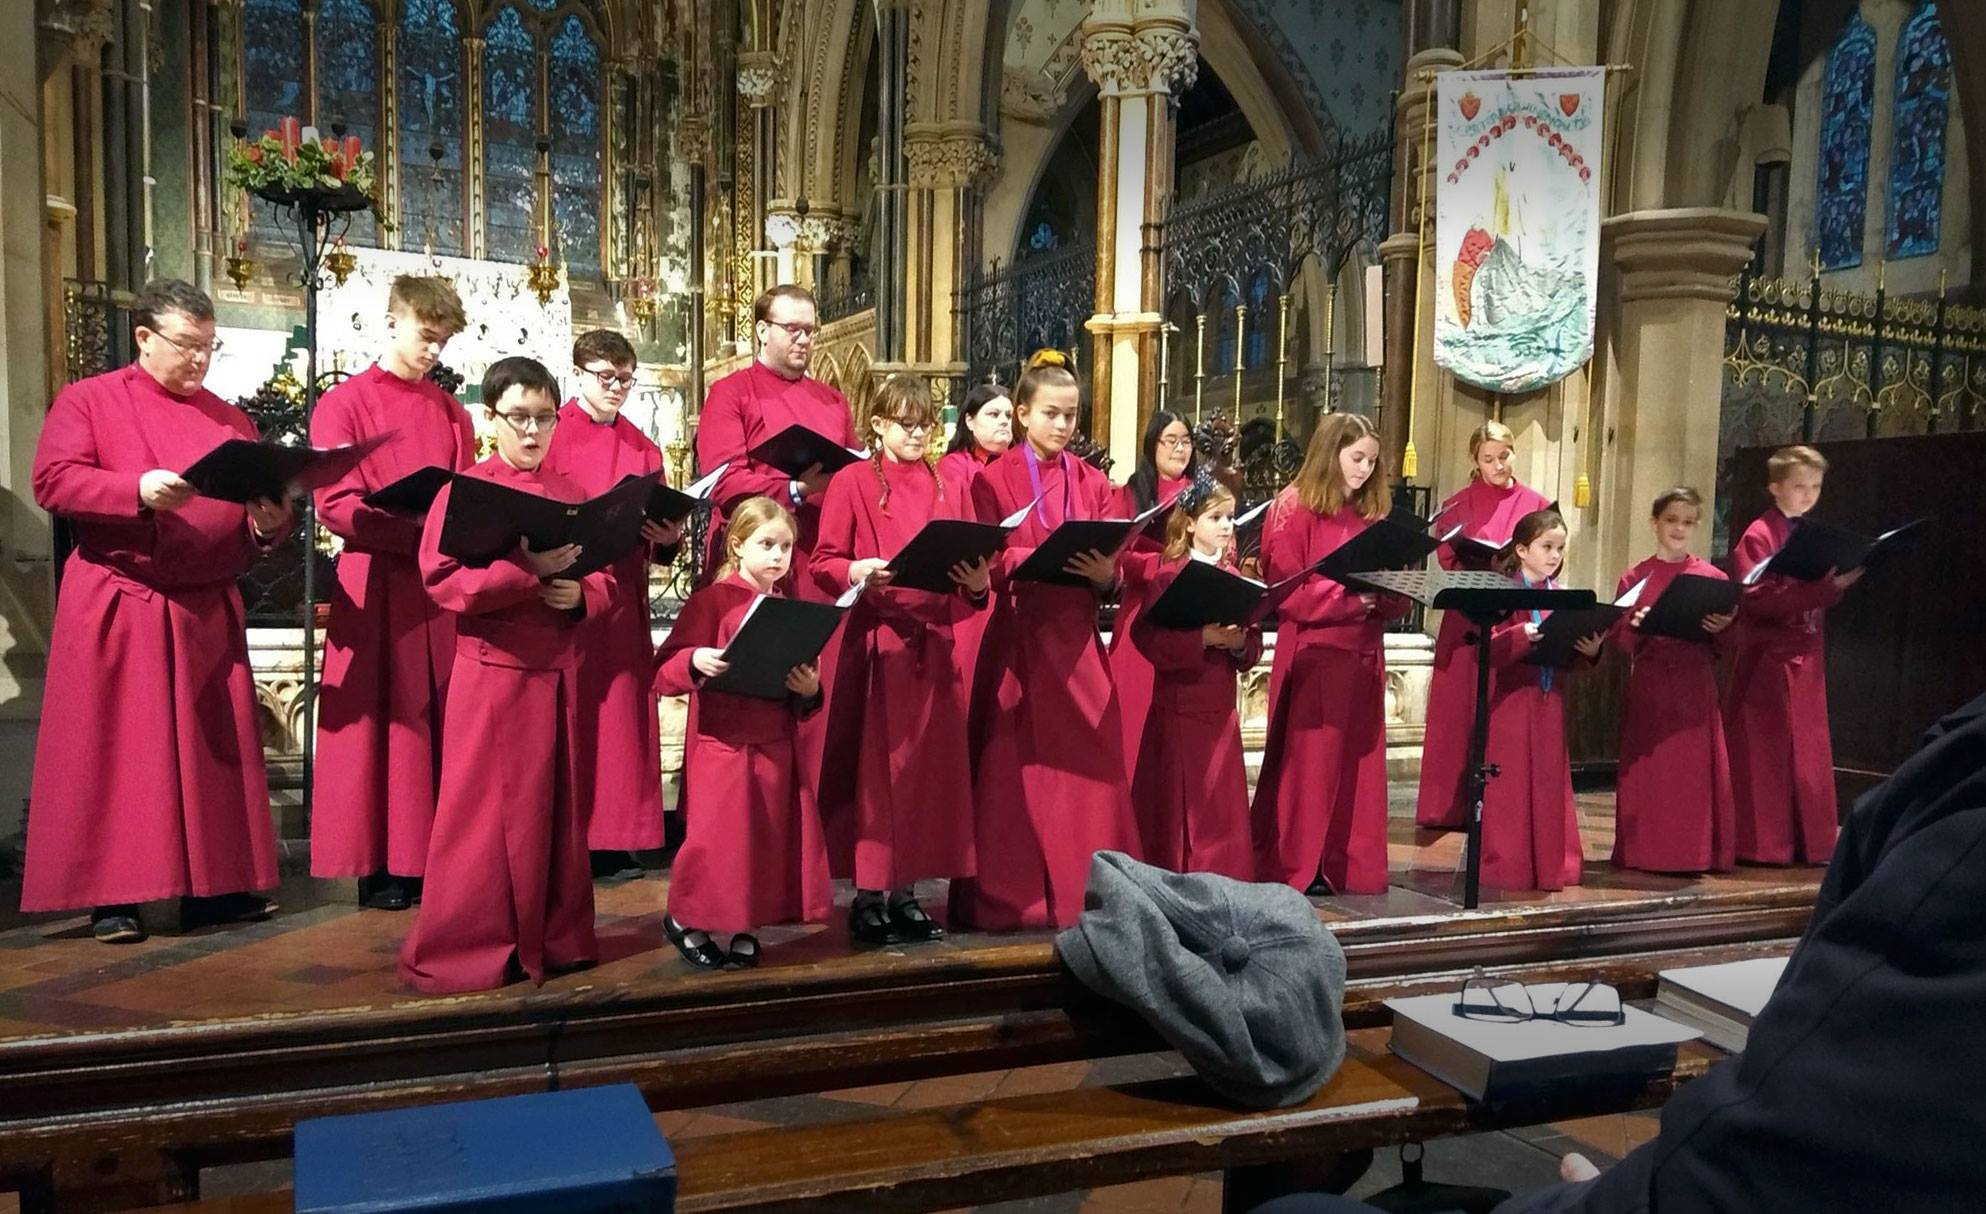 The choir singing for a concert in the church at Christmas